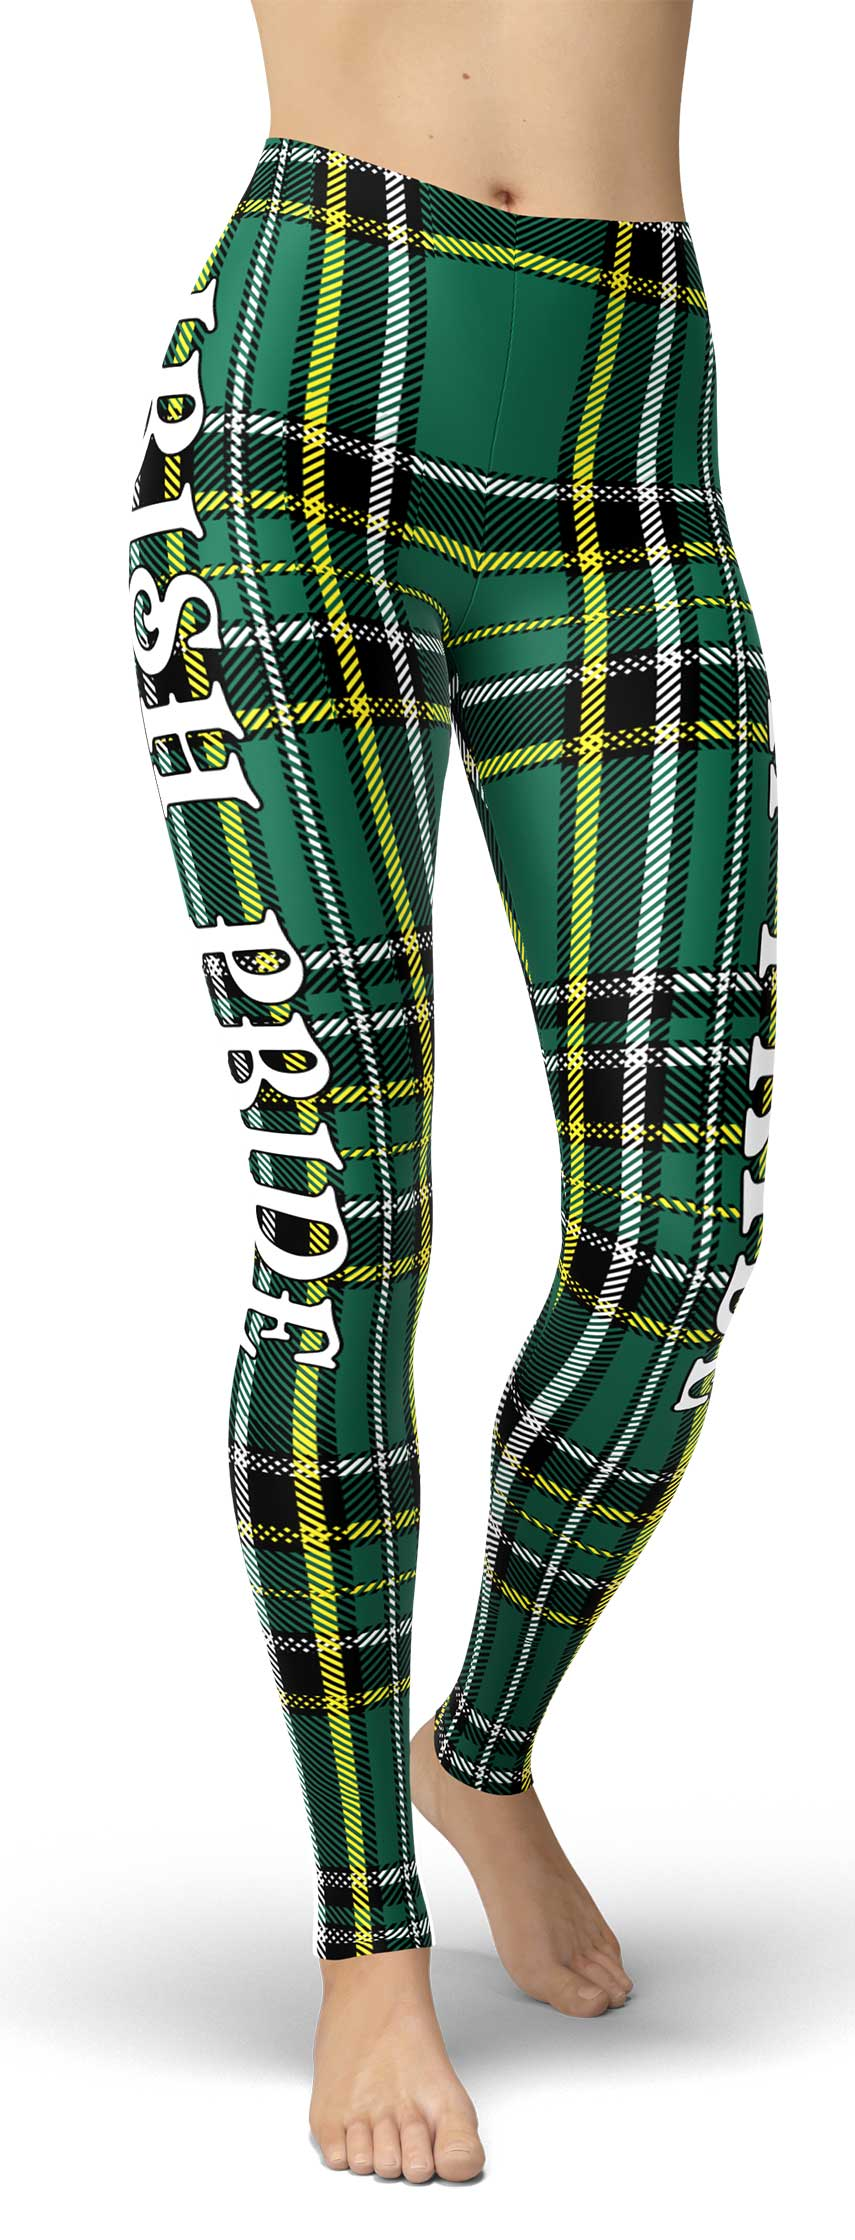 Irish Pride Leggings